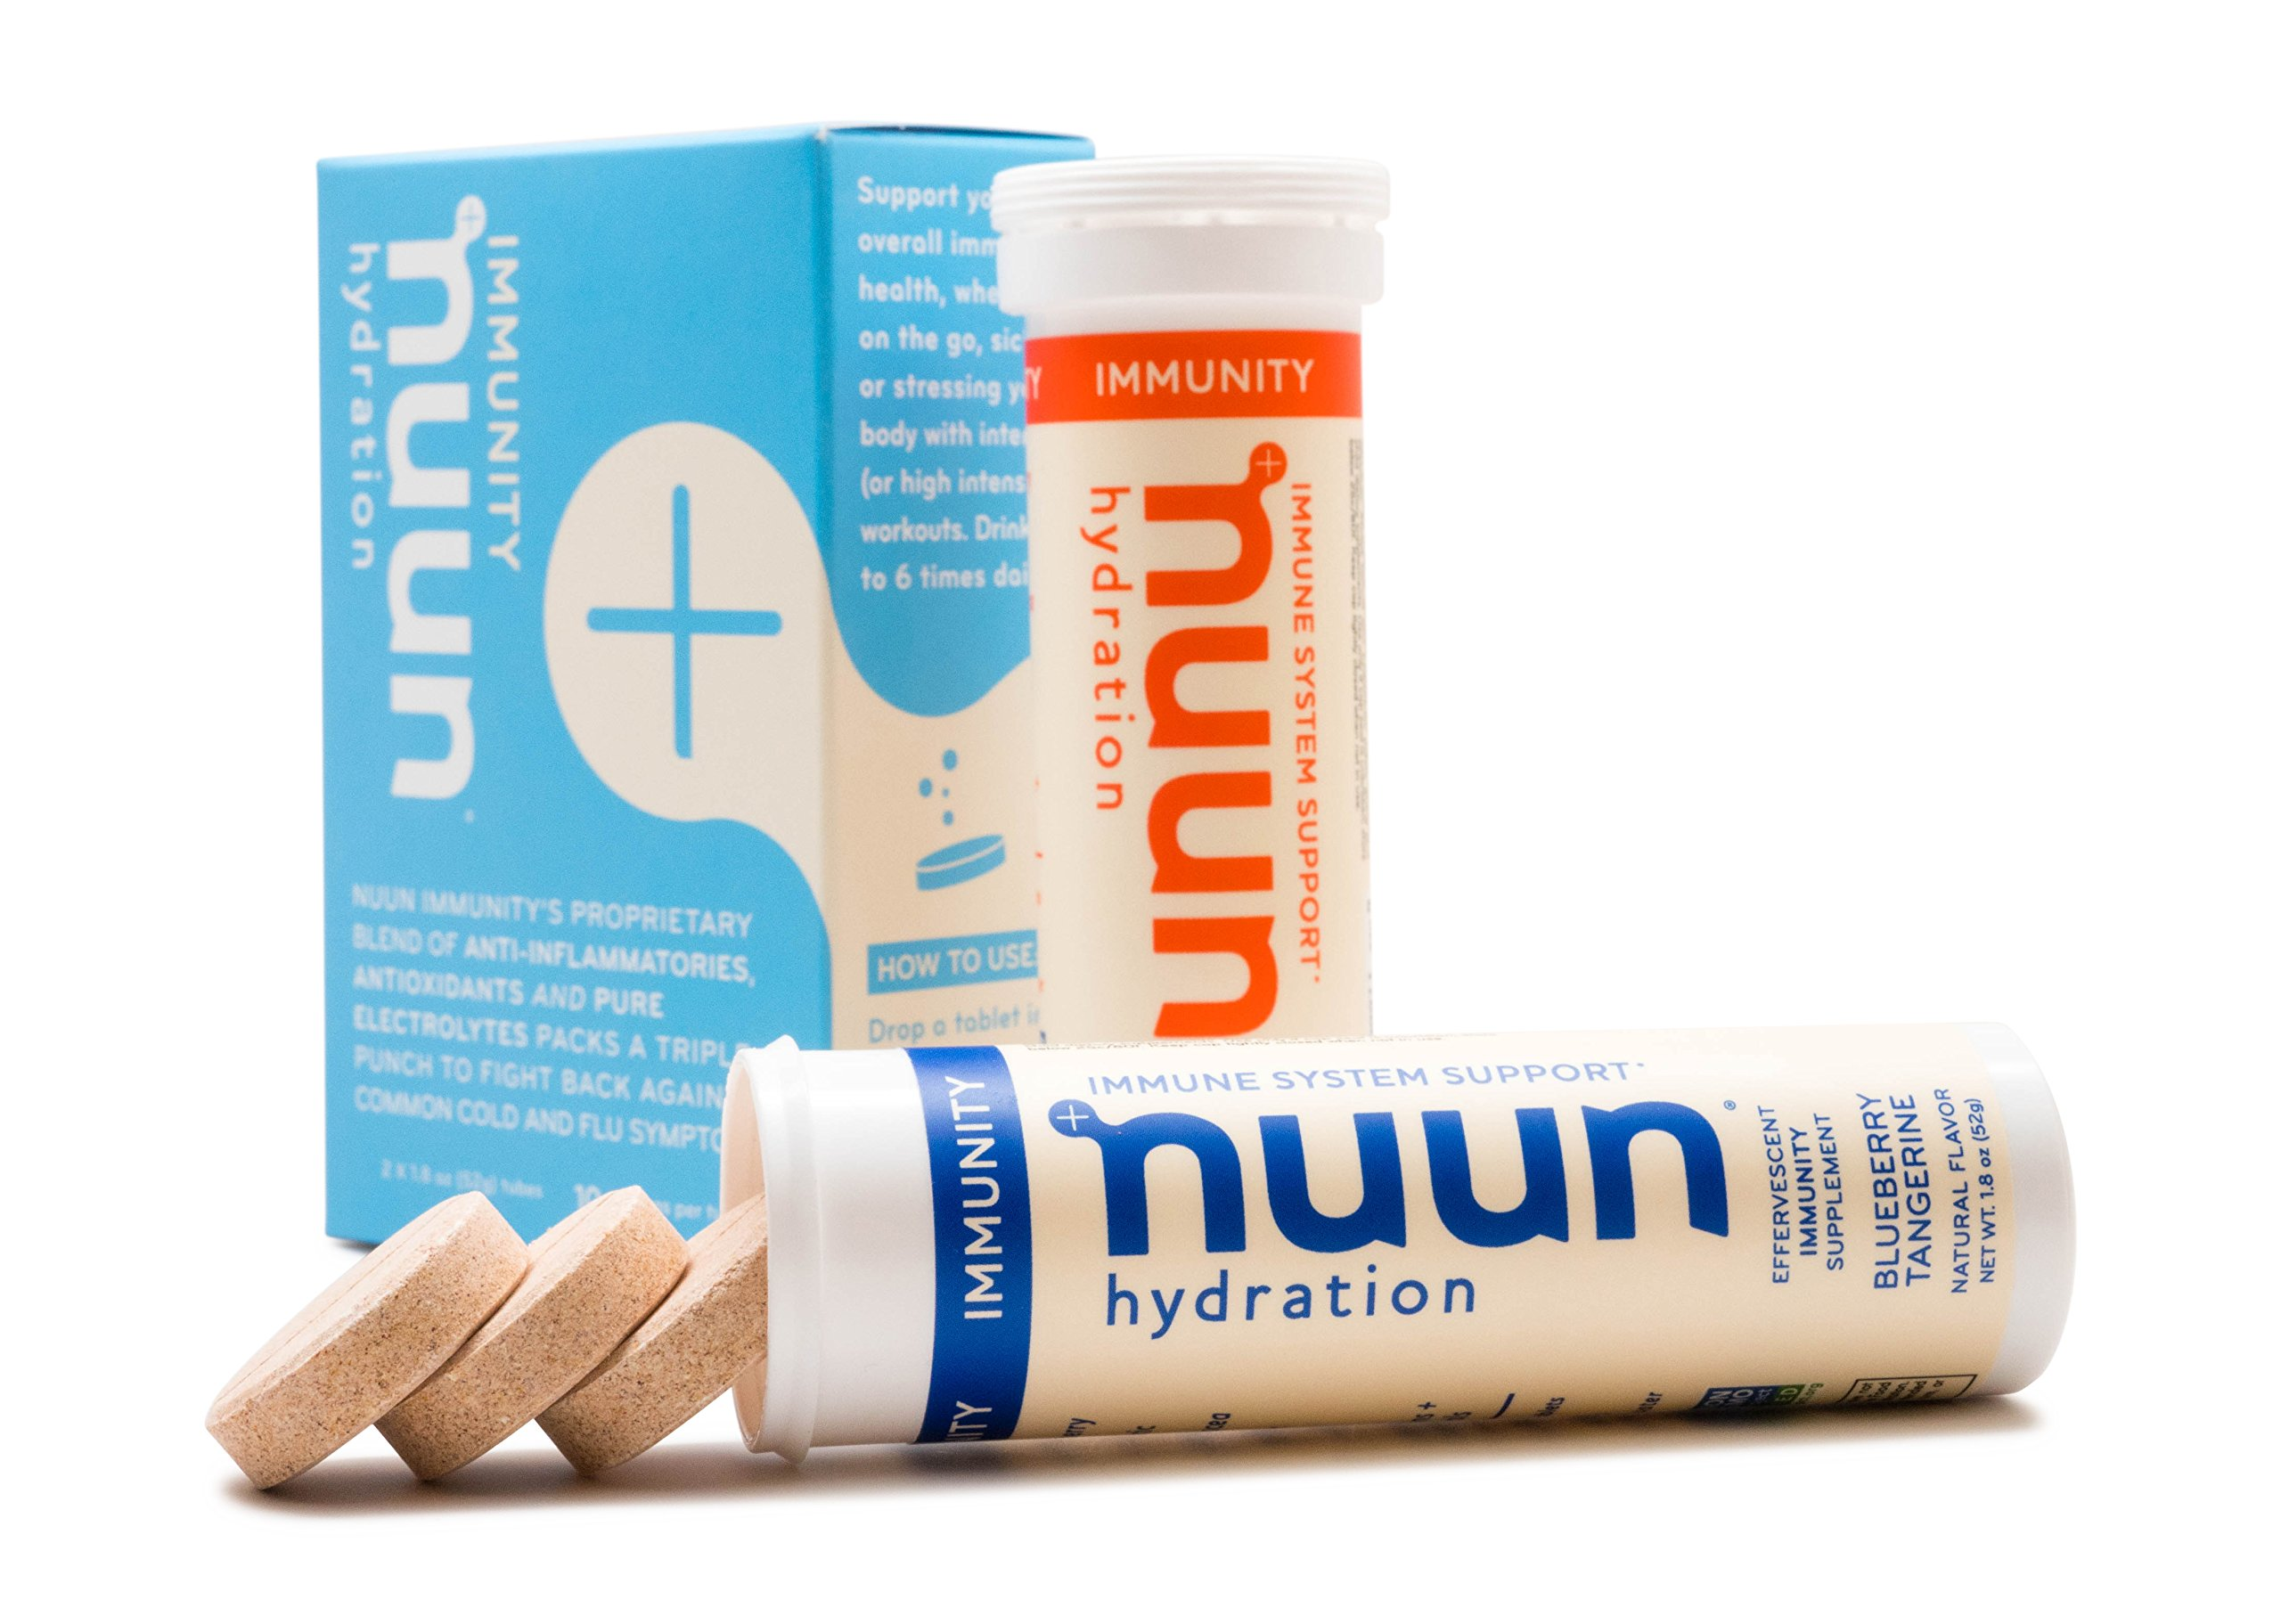 Nuun Immunity: Zinc, Turmeric, Elderberry, Ginger, Echinacea, and Electrolytes for an Anti-Inflammatory and Antioxidant Boost in Immune Support, Blueberry Tangerine/Orange Citrus Mixed 2-Pack